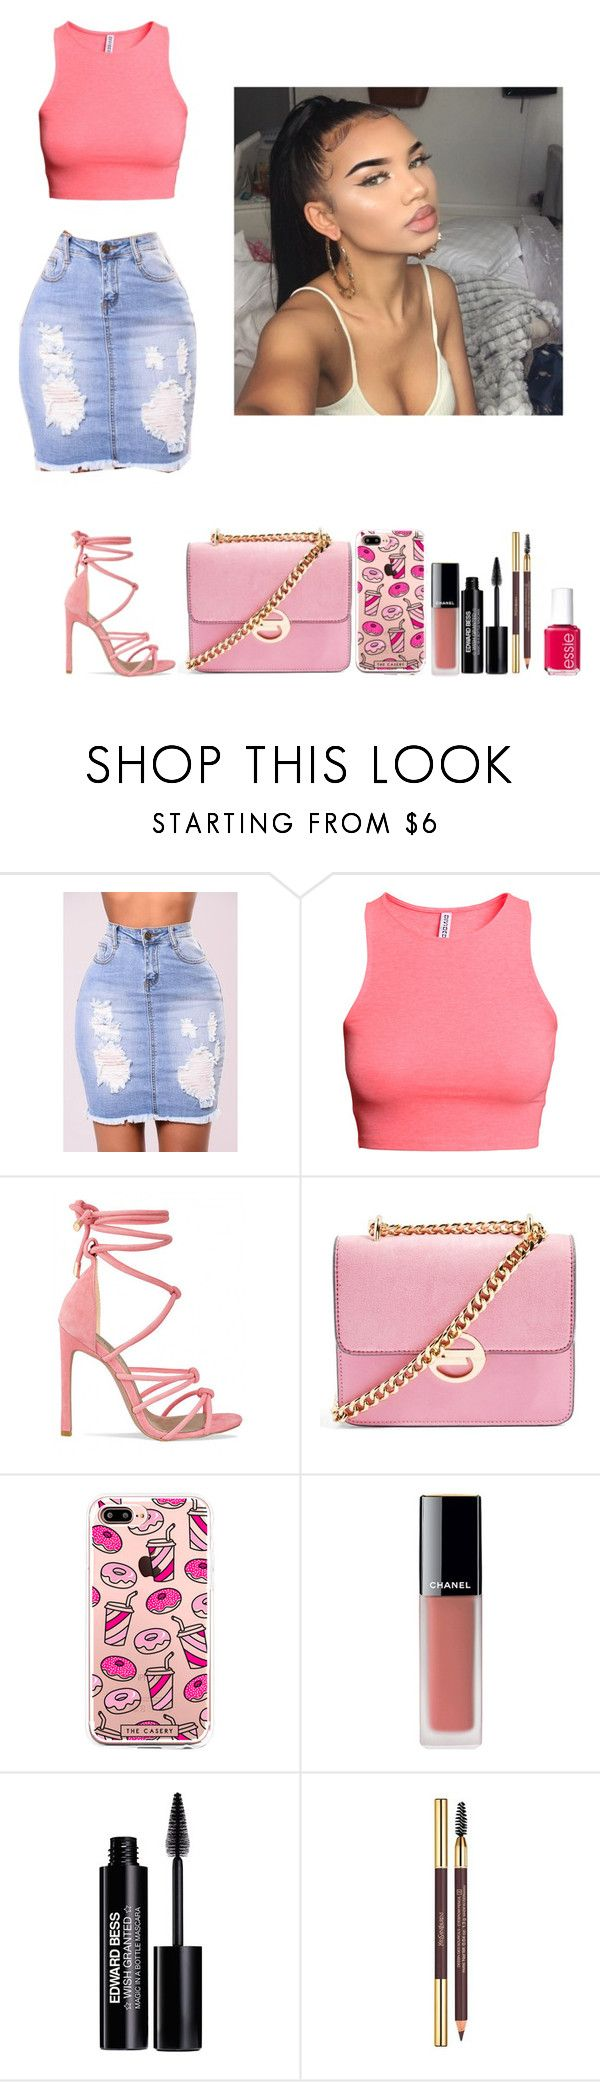 3442 best Summer Clothes images on Pinterest   Beautiful clothes ...